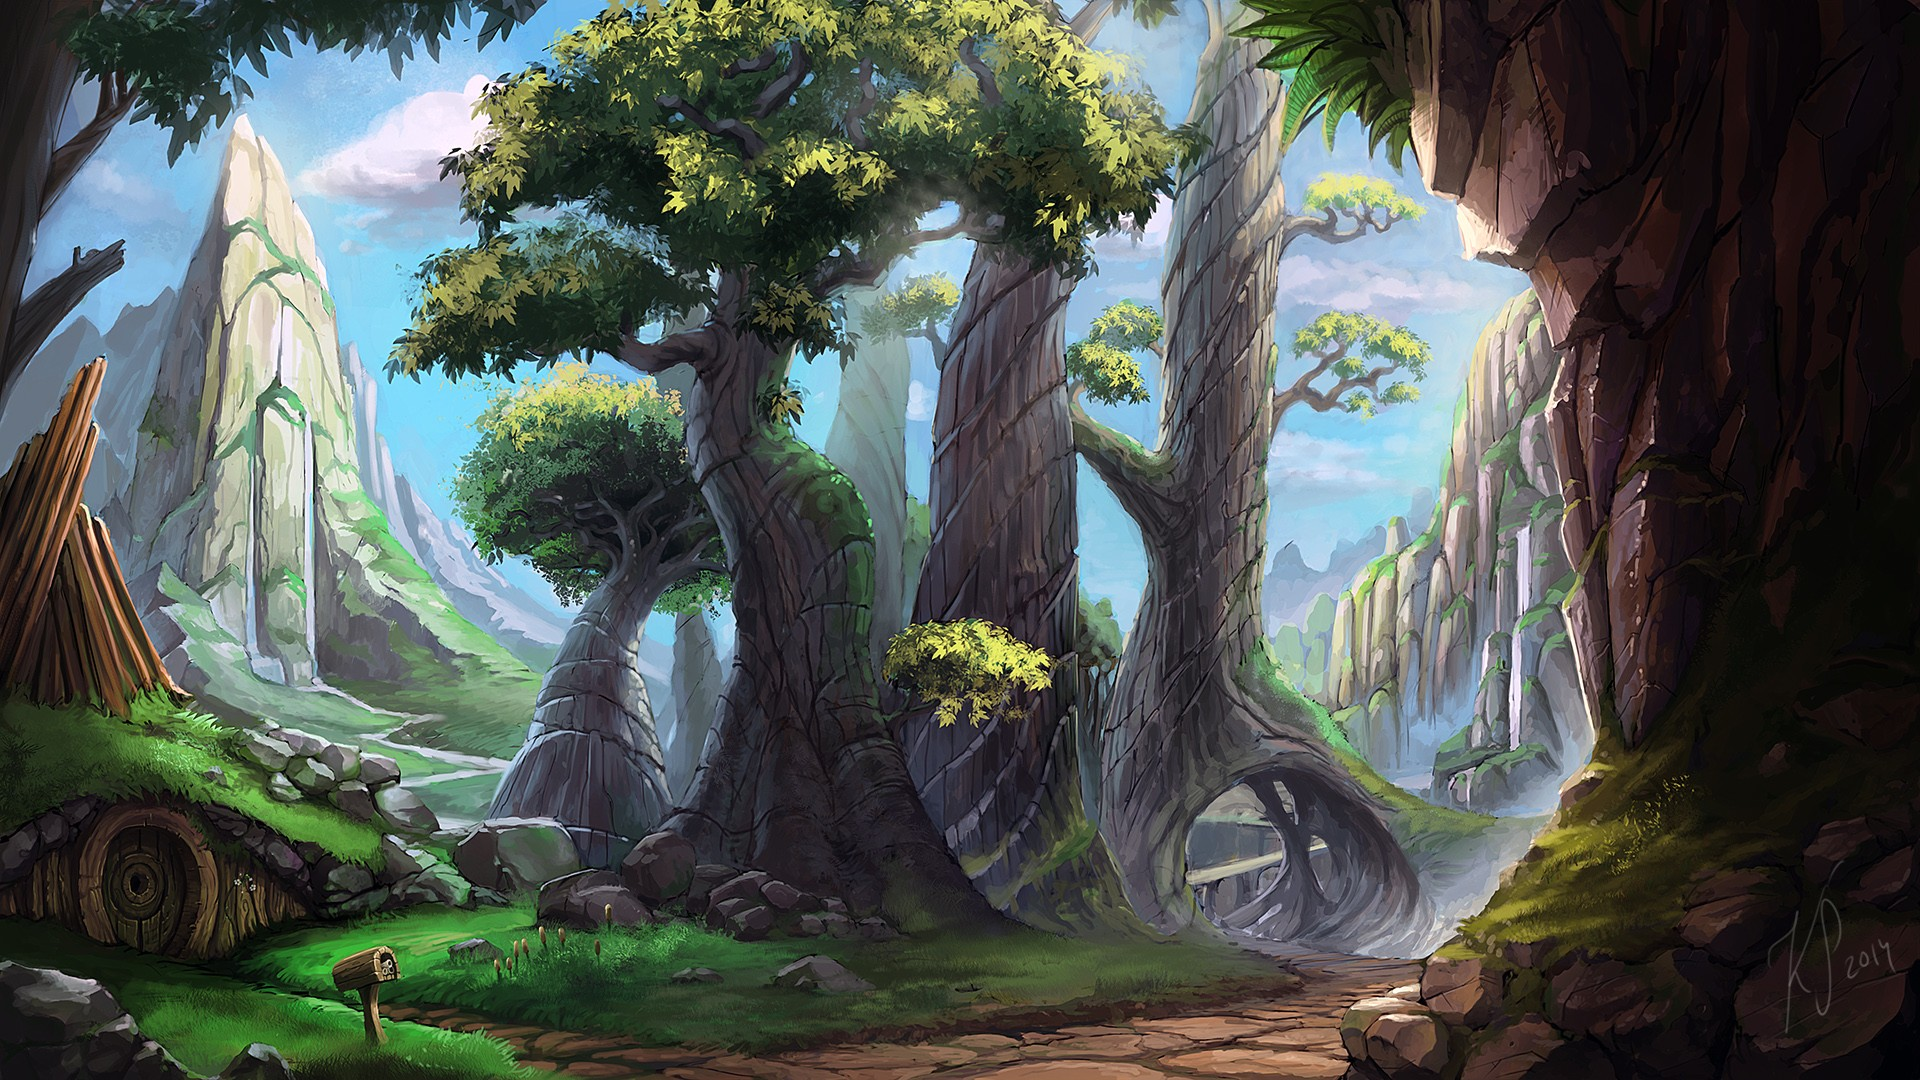 1920x1080 Wallpaper Trees, Landscape, Drawing, Painting, Forest, Digital